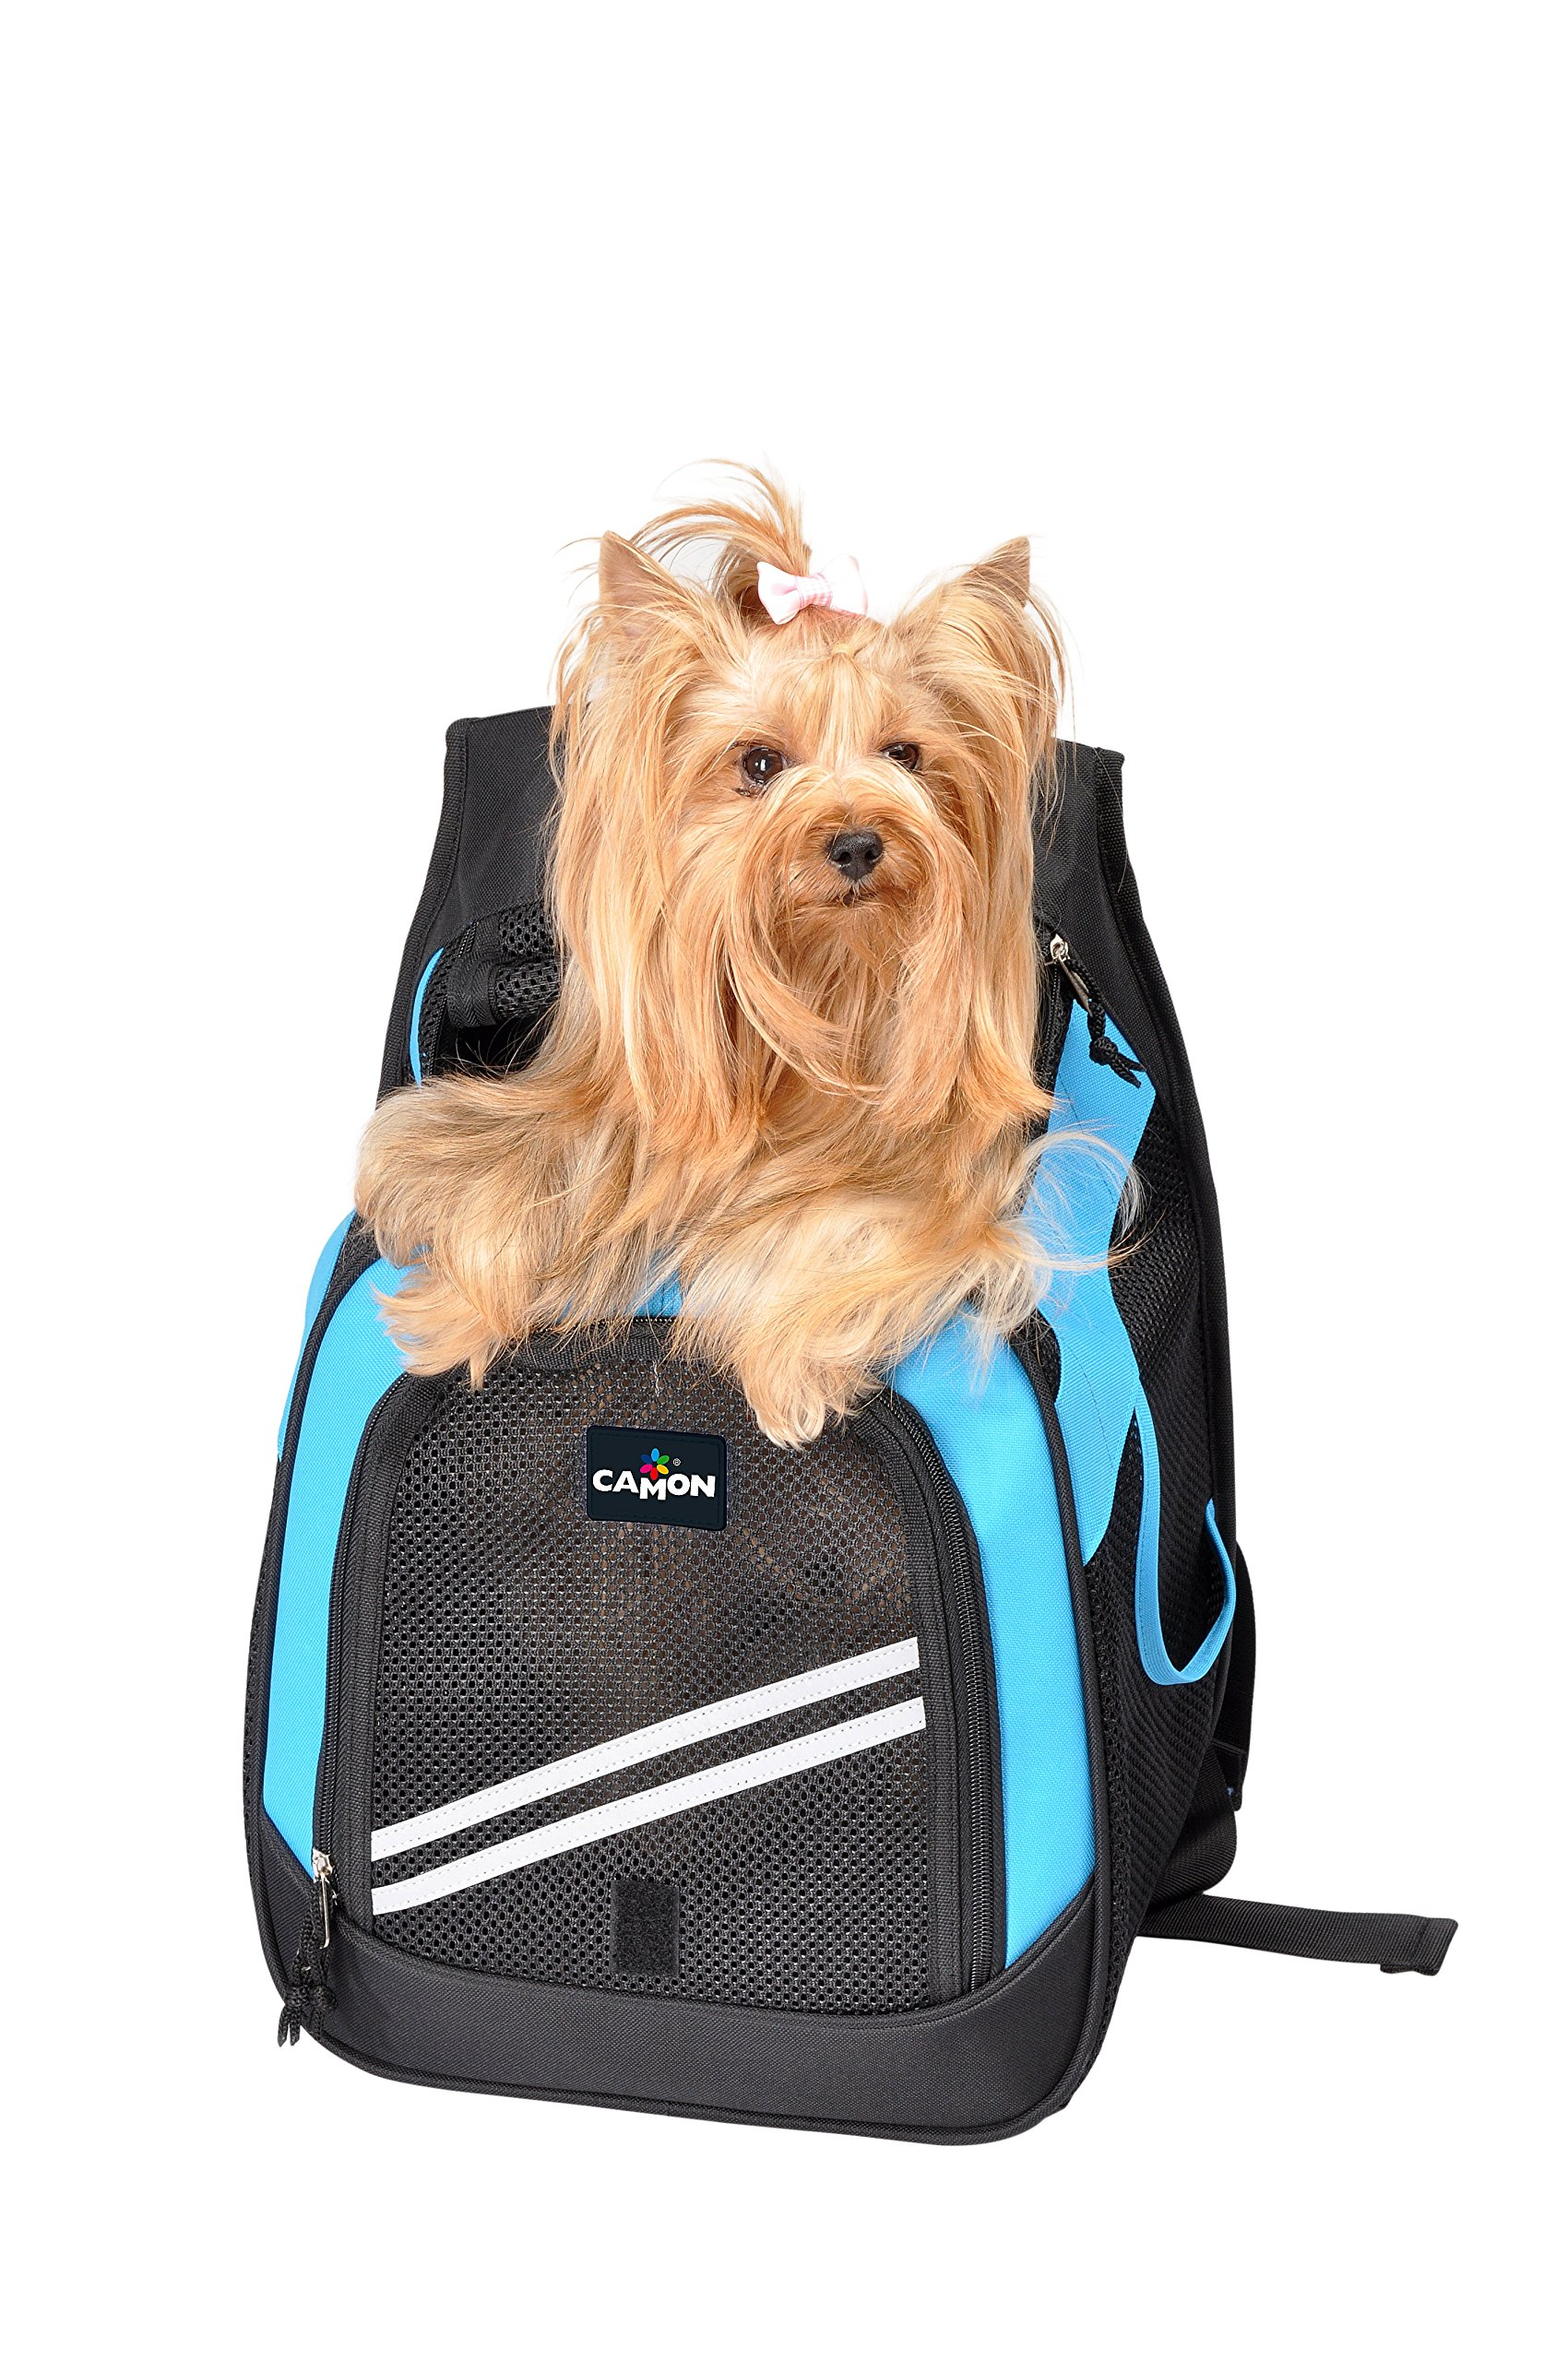 Pooch Pouch Backpack Dog Carrier Adjustable Tote,Size Medium,12.6''W x 9.5'' Deep x 18''H, 20 lb Capacity